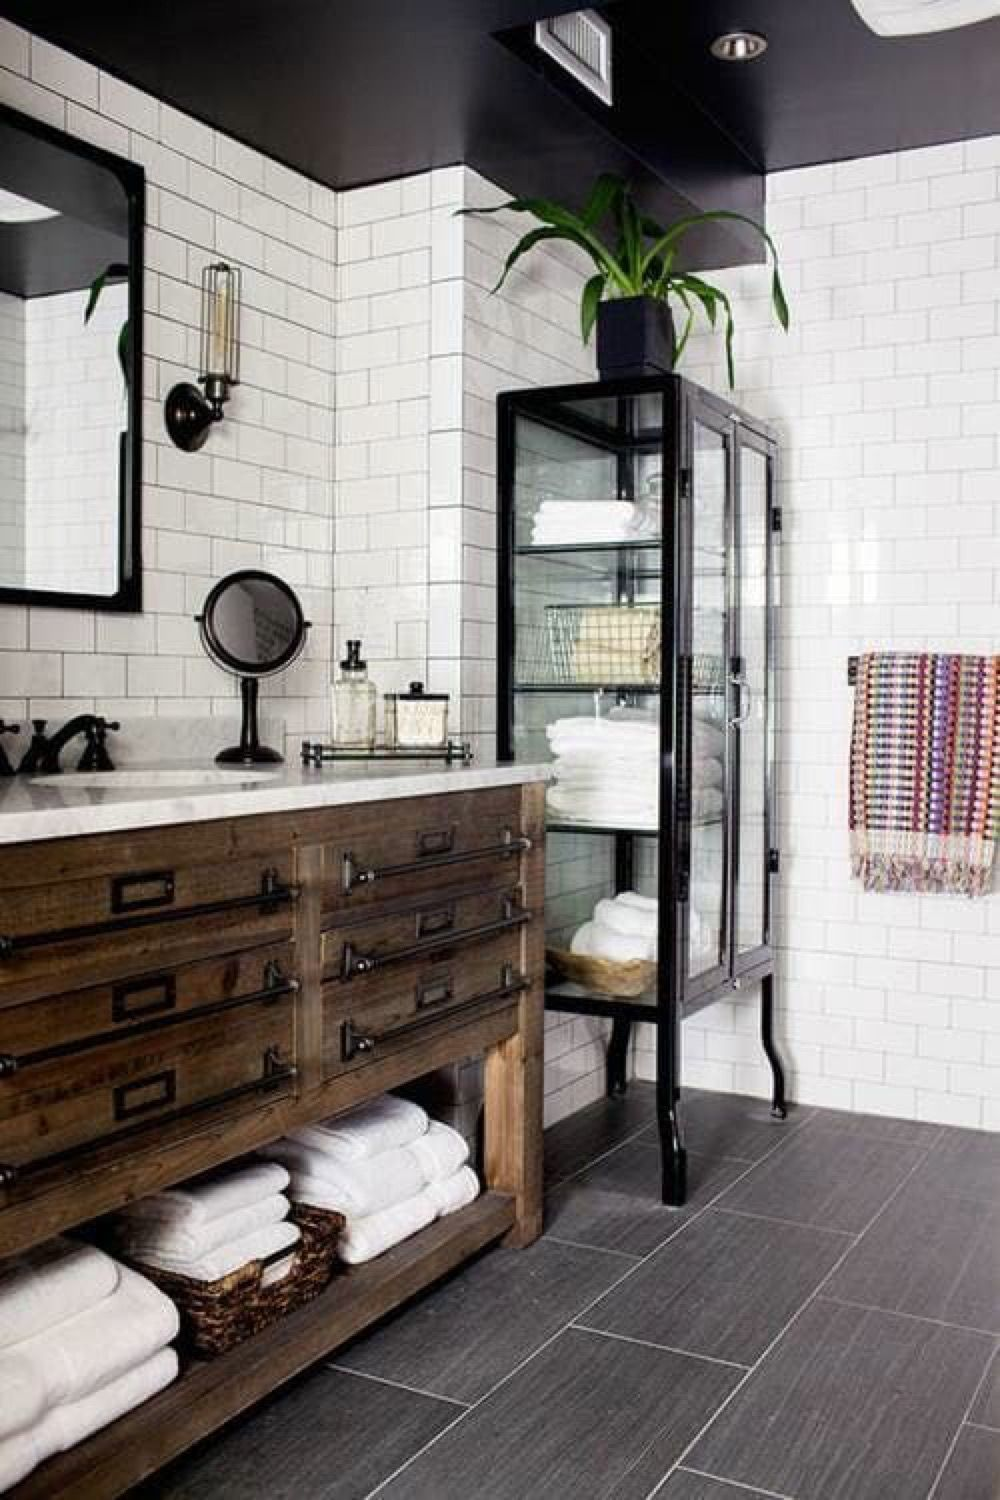 Home-fitness-studio-innenarchitektur industrial loft  bathroom sanctuary  pinterest  bathroom home